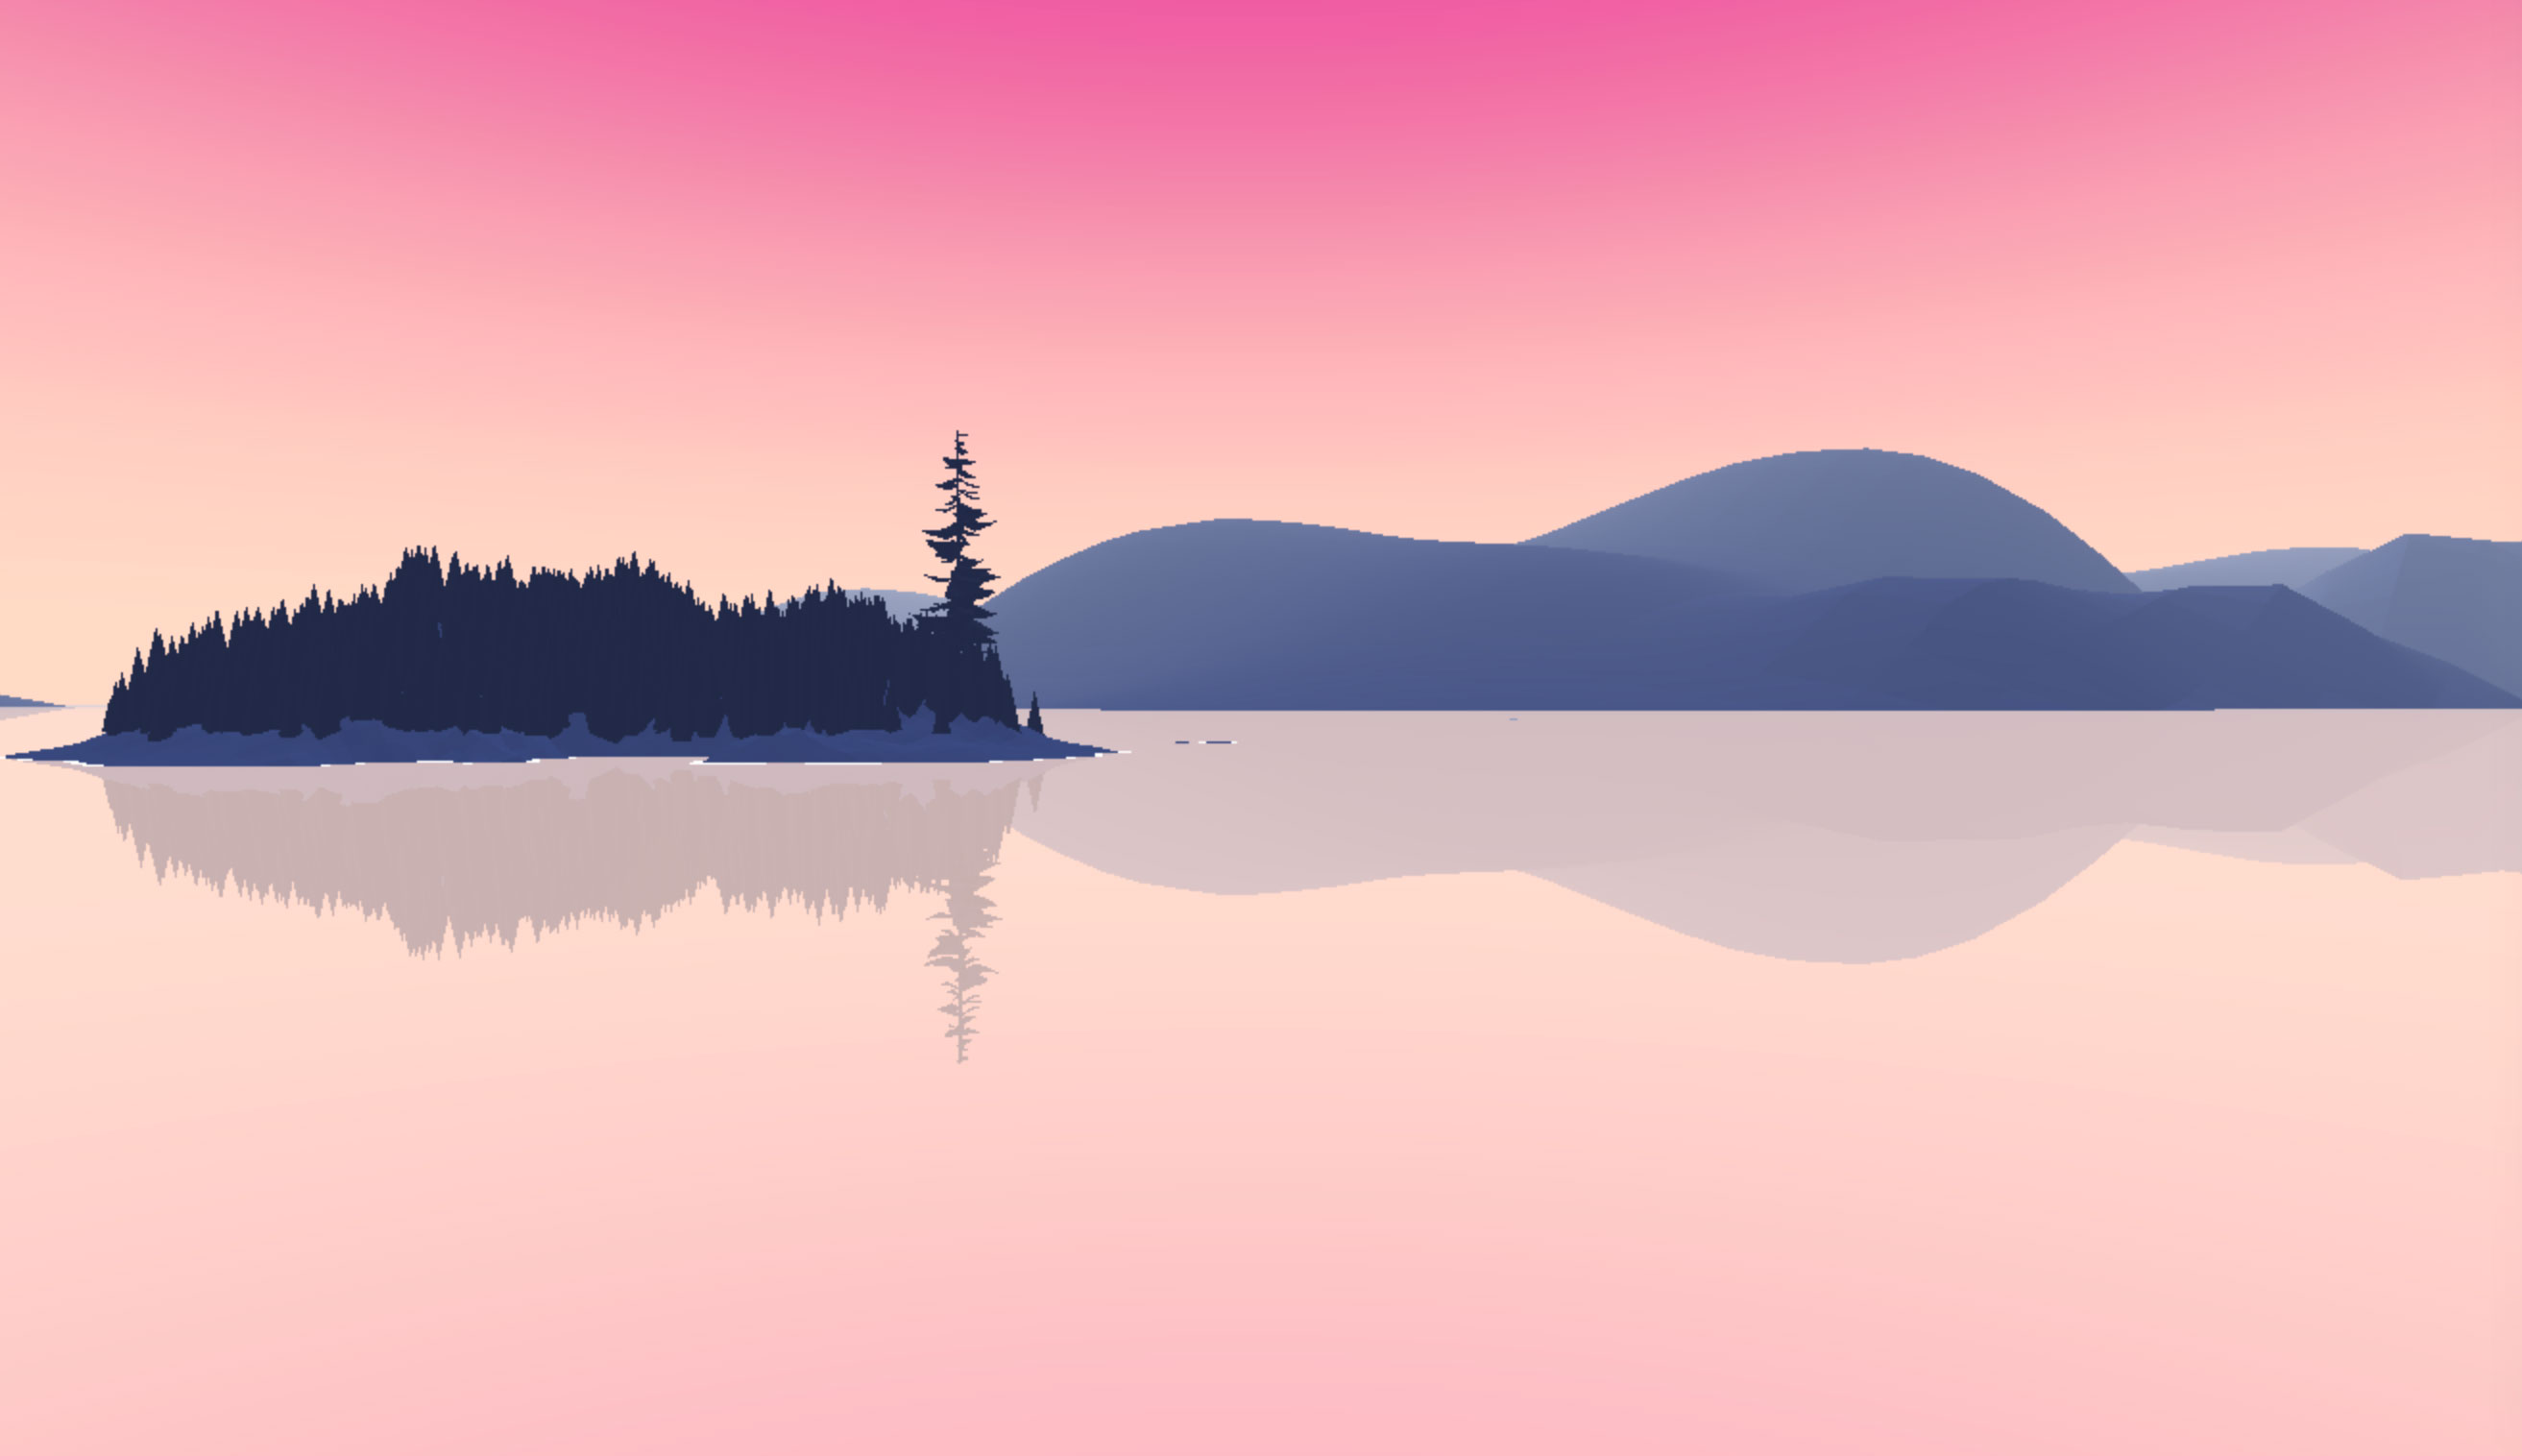 WebVR brings 3D immersive worlds, like this fly-through of Sechelt, British Columbia, to the browser.